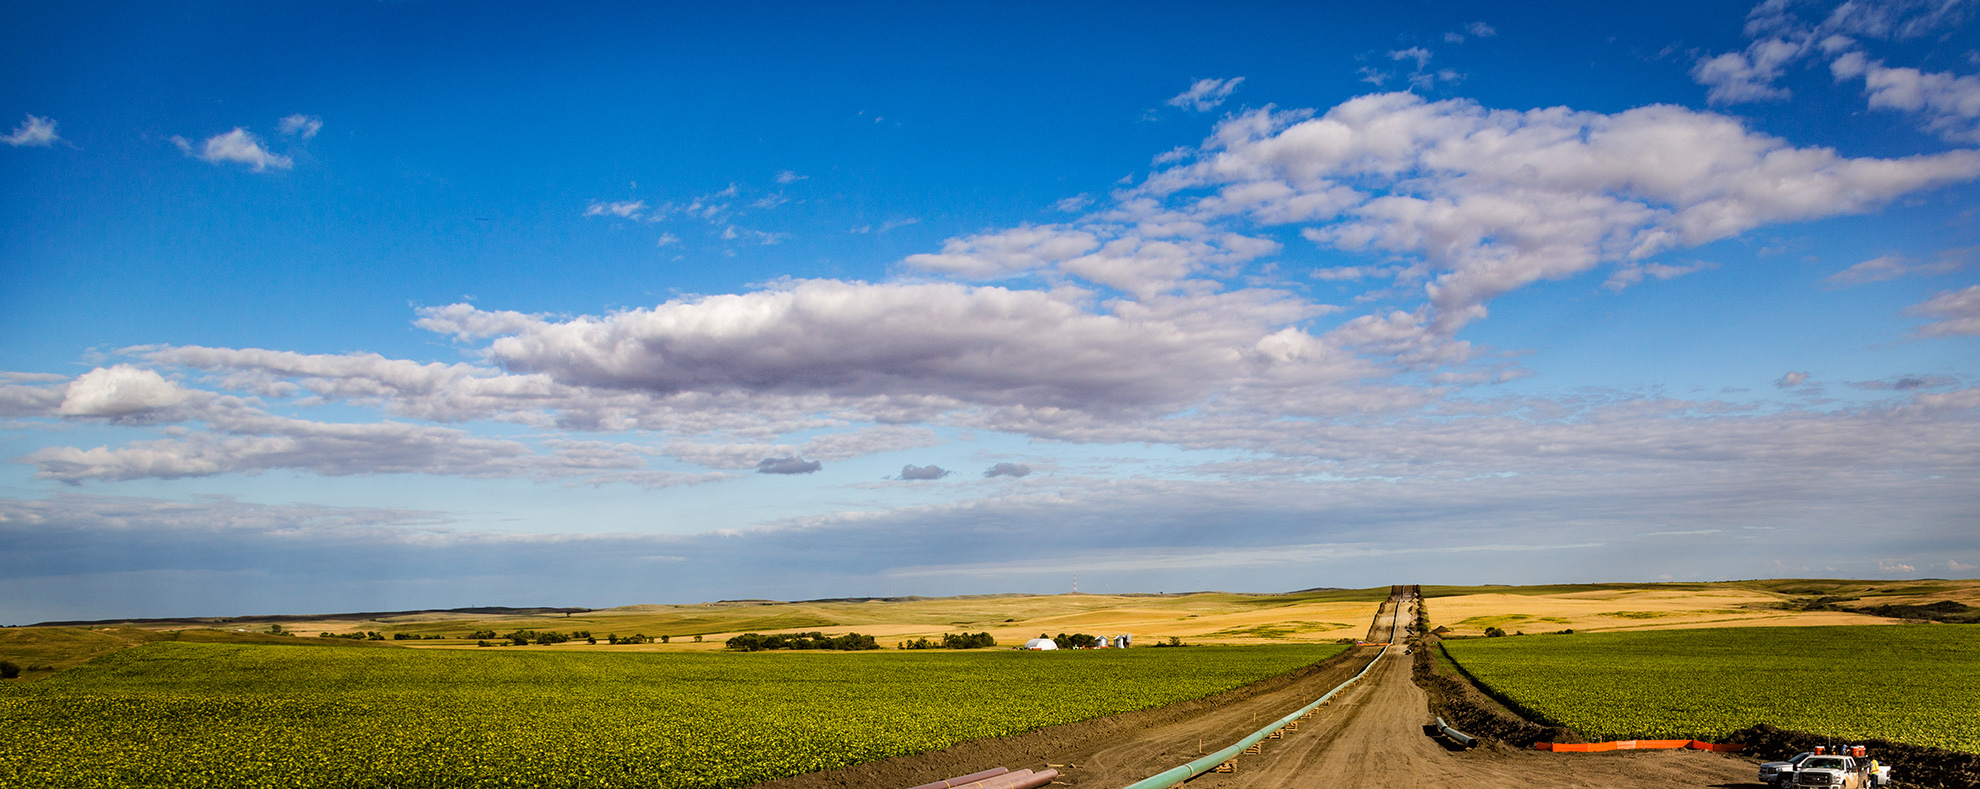 Construction of the Dakota Access Pipeline near New Salem, North Dakota, on August 25, 2016.